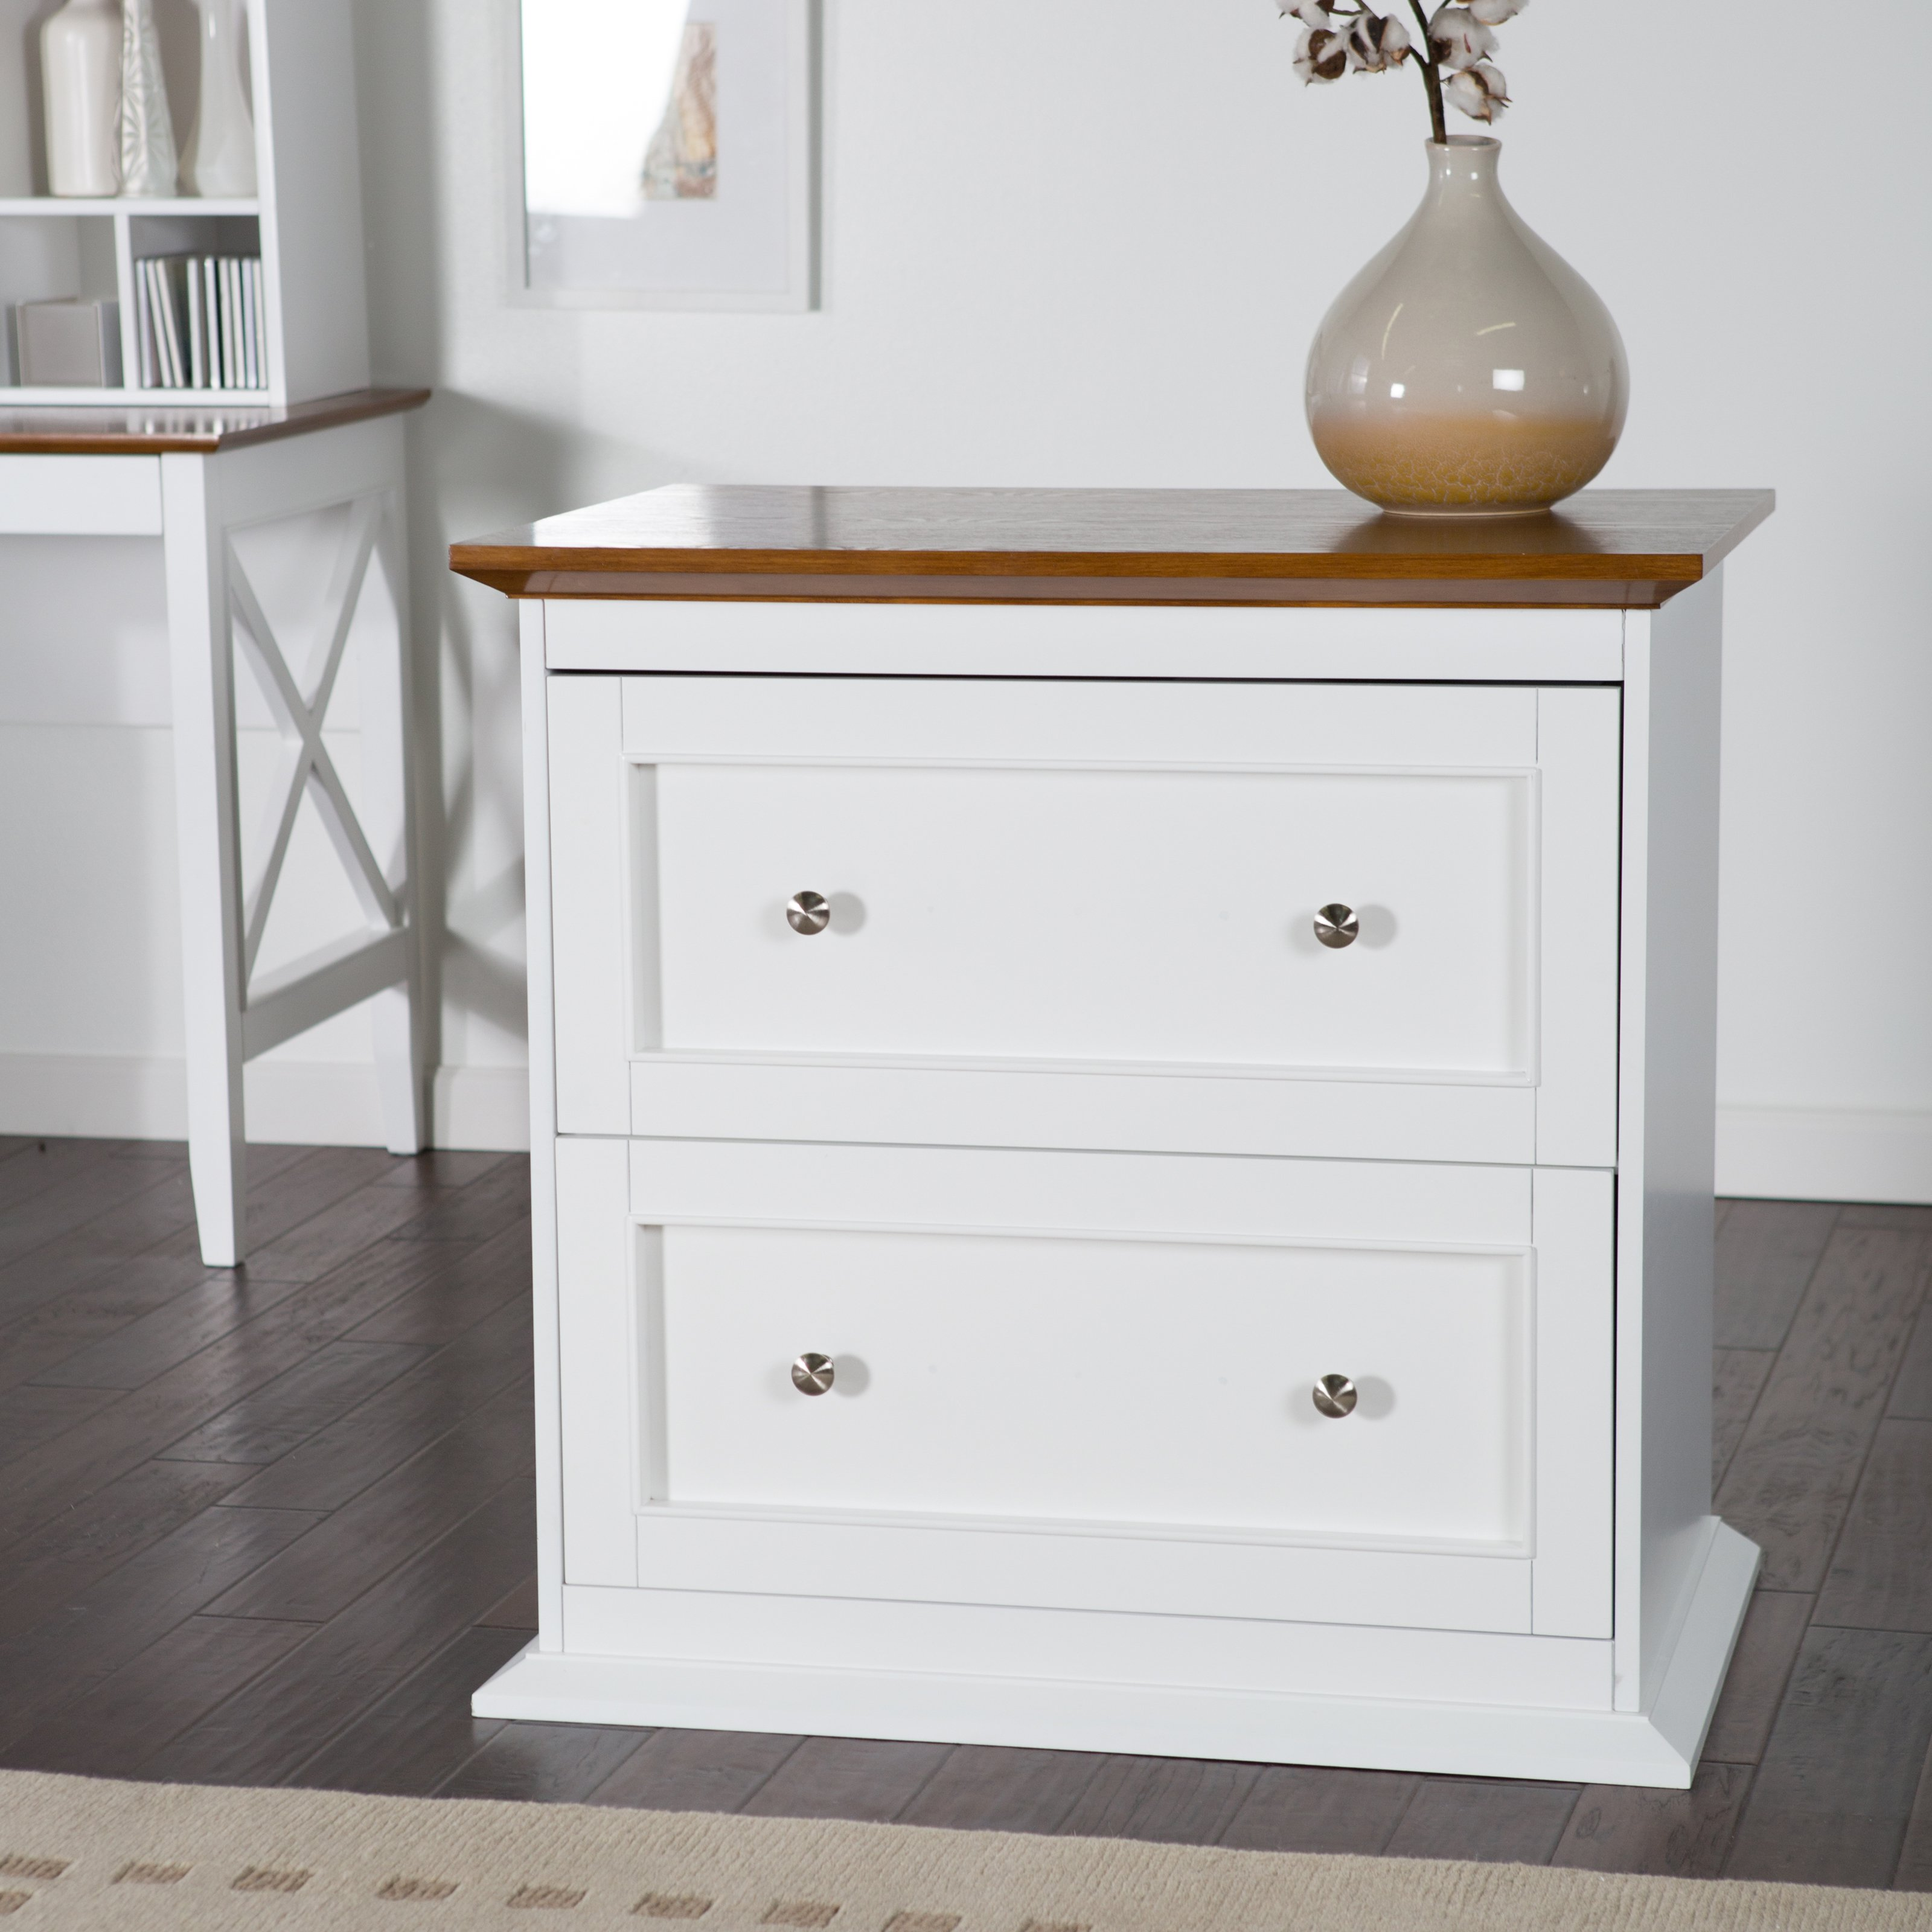 Belham Living Hampton 2 Drawer Lateral Wood File Cabinet   White/Oak    Walmart.com